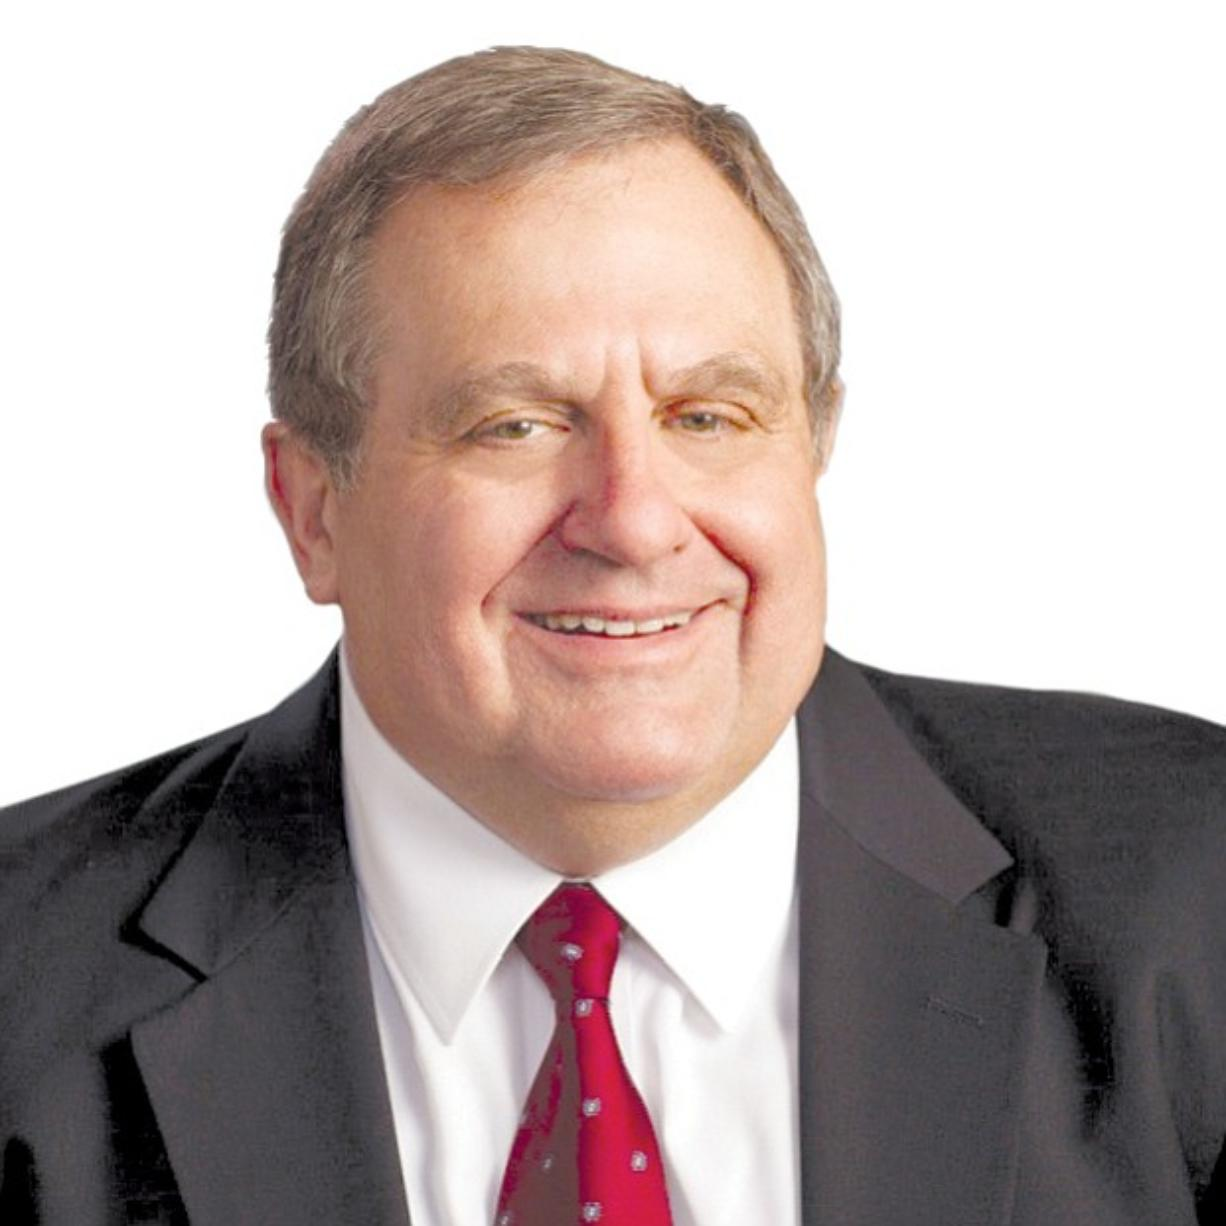 Don Brunell, retired as president of the Association of Washington Business, is a business analyst, writer, and columnist.